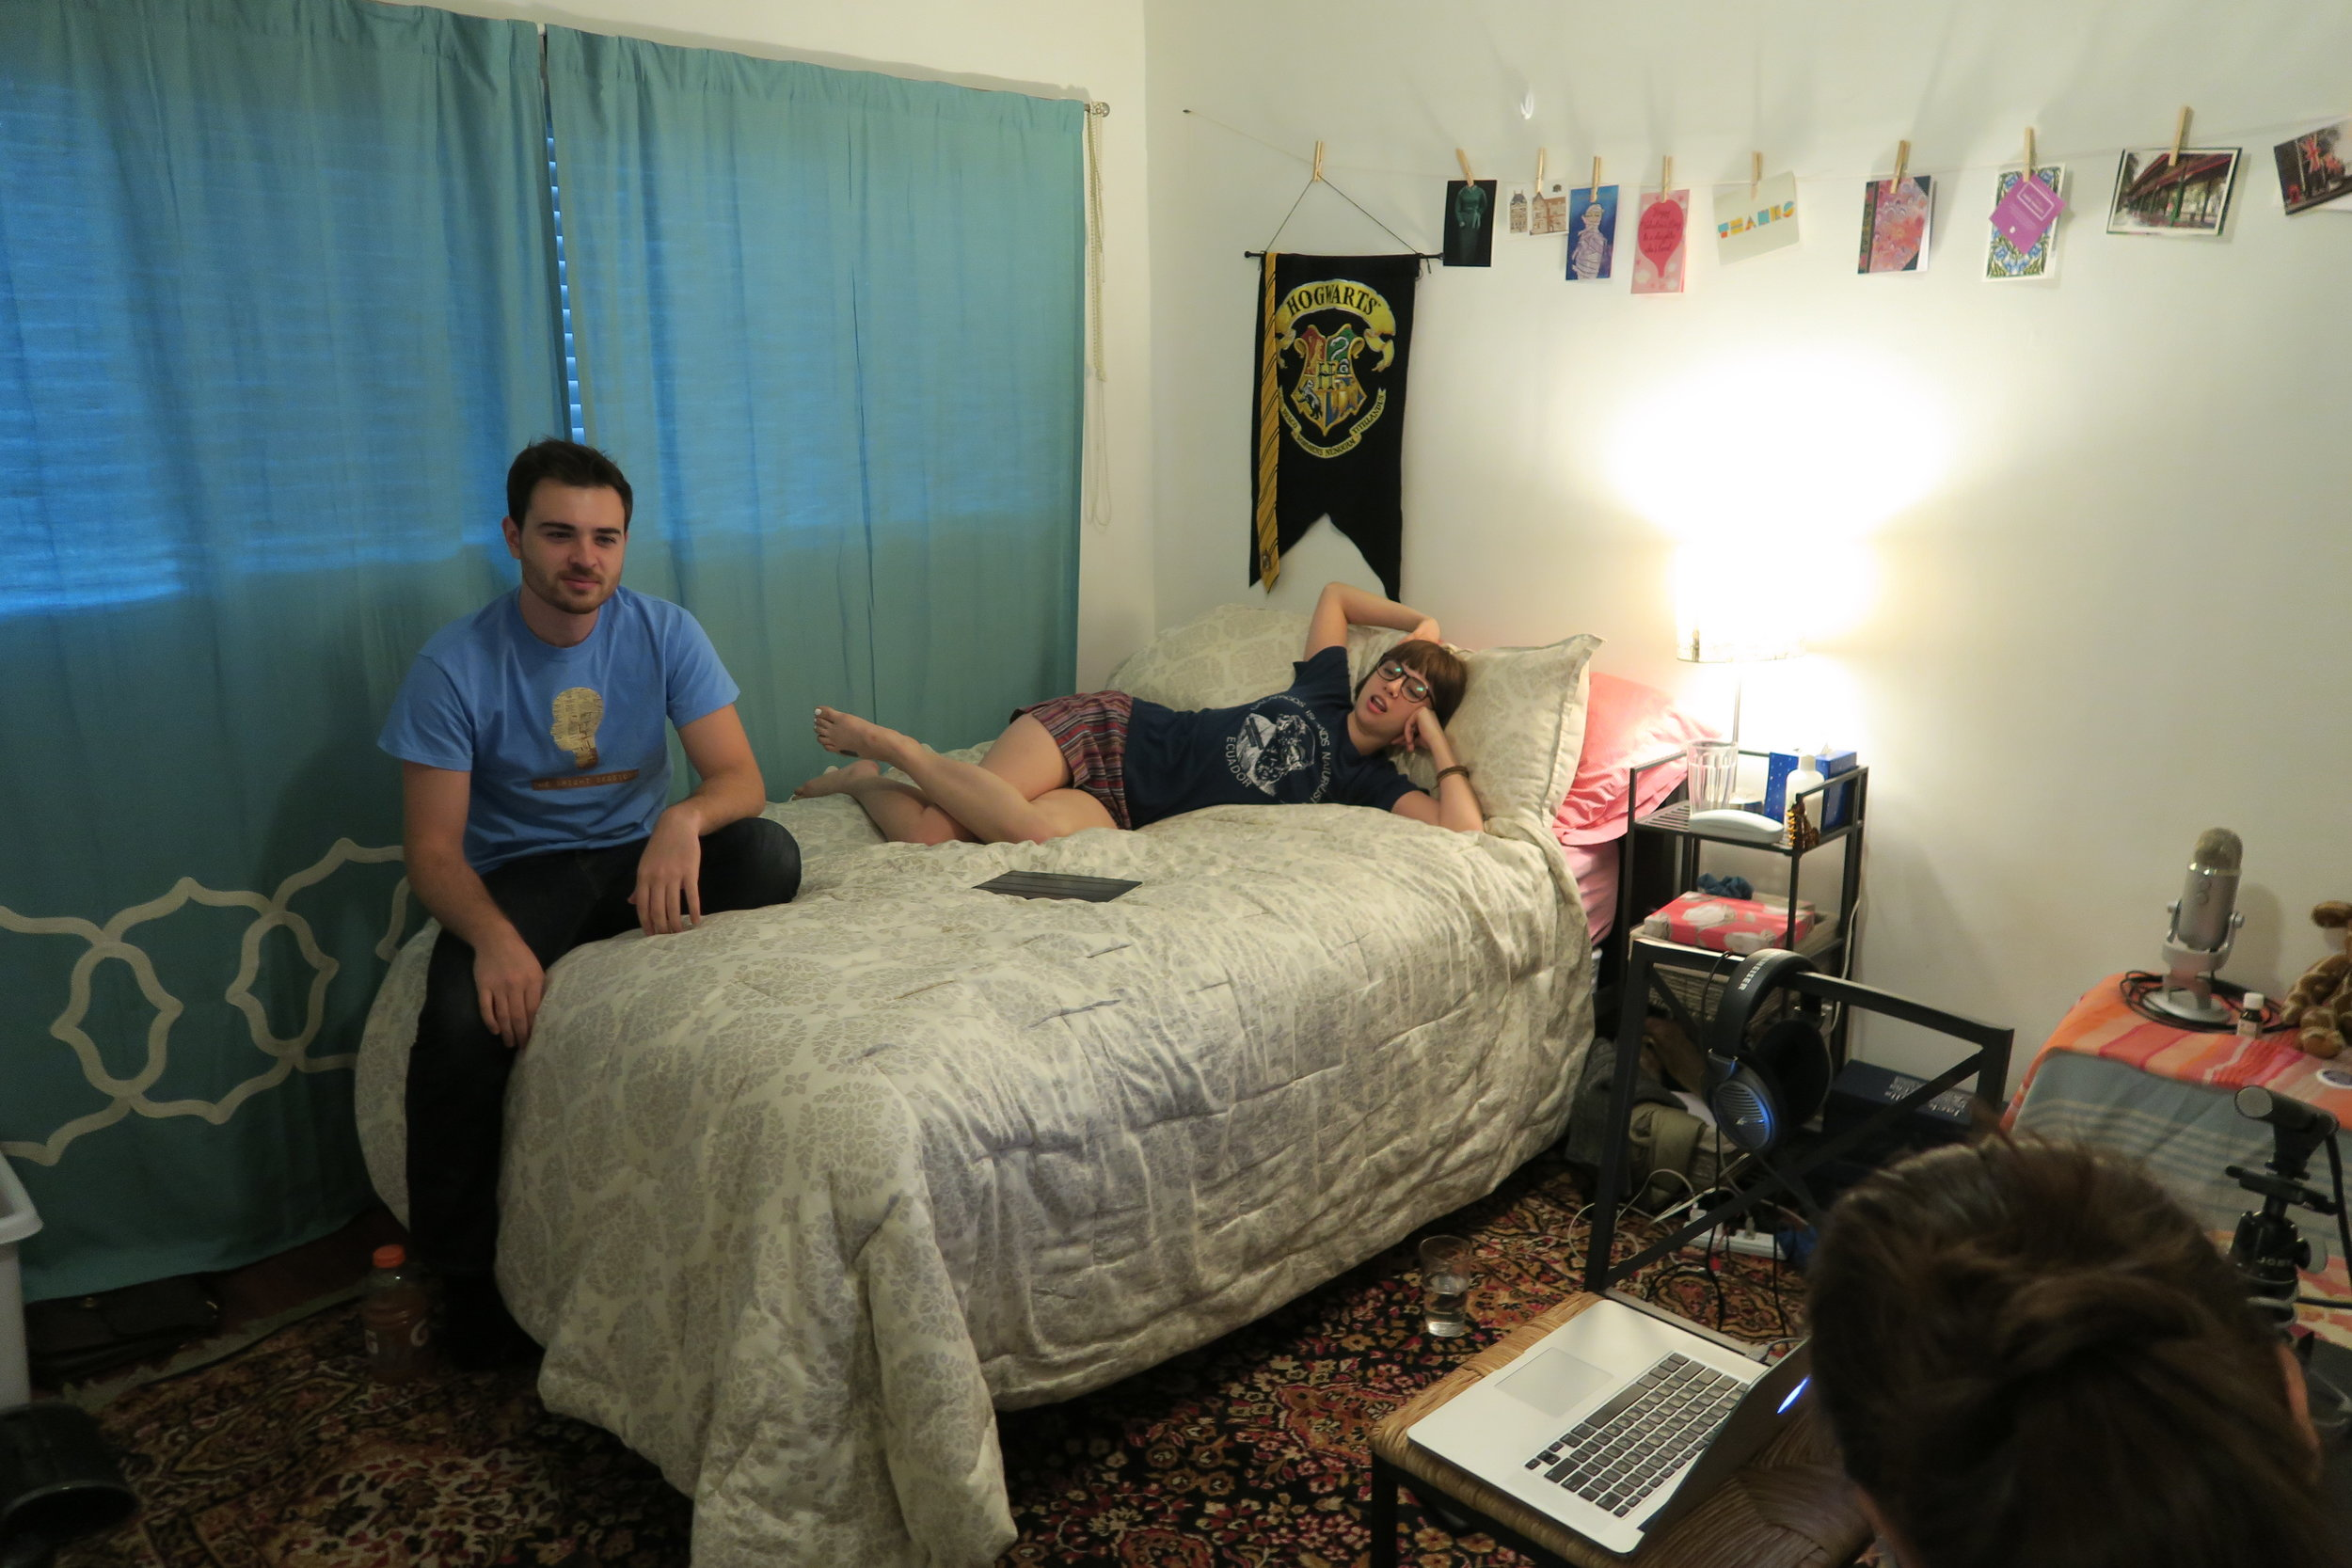 Charlie and Anna taking a break during Season 2 recording in our very swank green room, otherwise known as my bed.